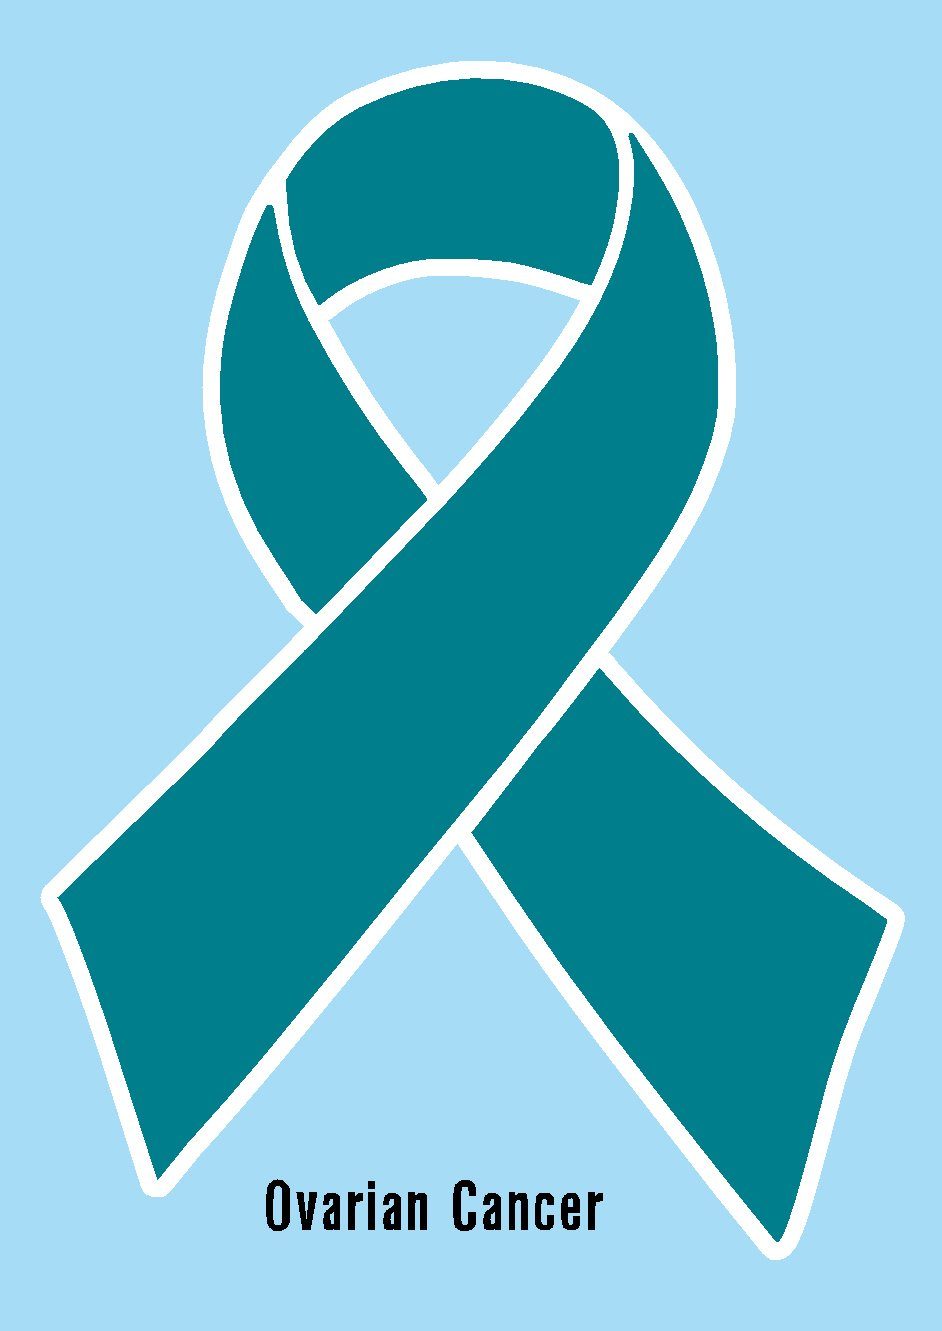 Amazon ovarian cancer ribbon teal printed vinyl decal amazon ovarian cancer ribbon teal printed vinyl decal sticker label for car cell phone window computer ipad iphone wall etc biocorpaavc